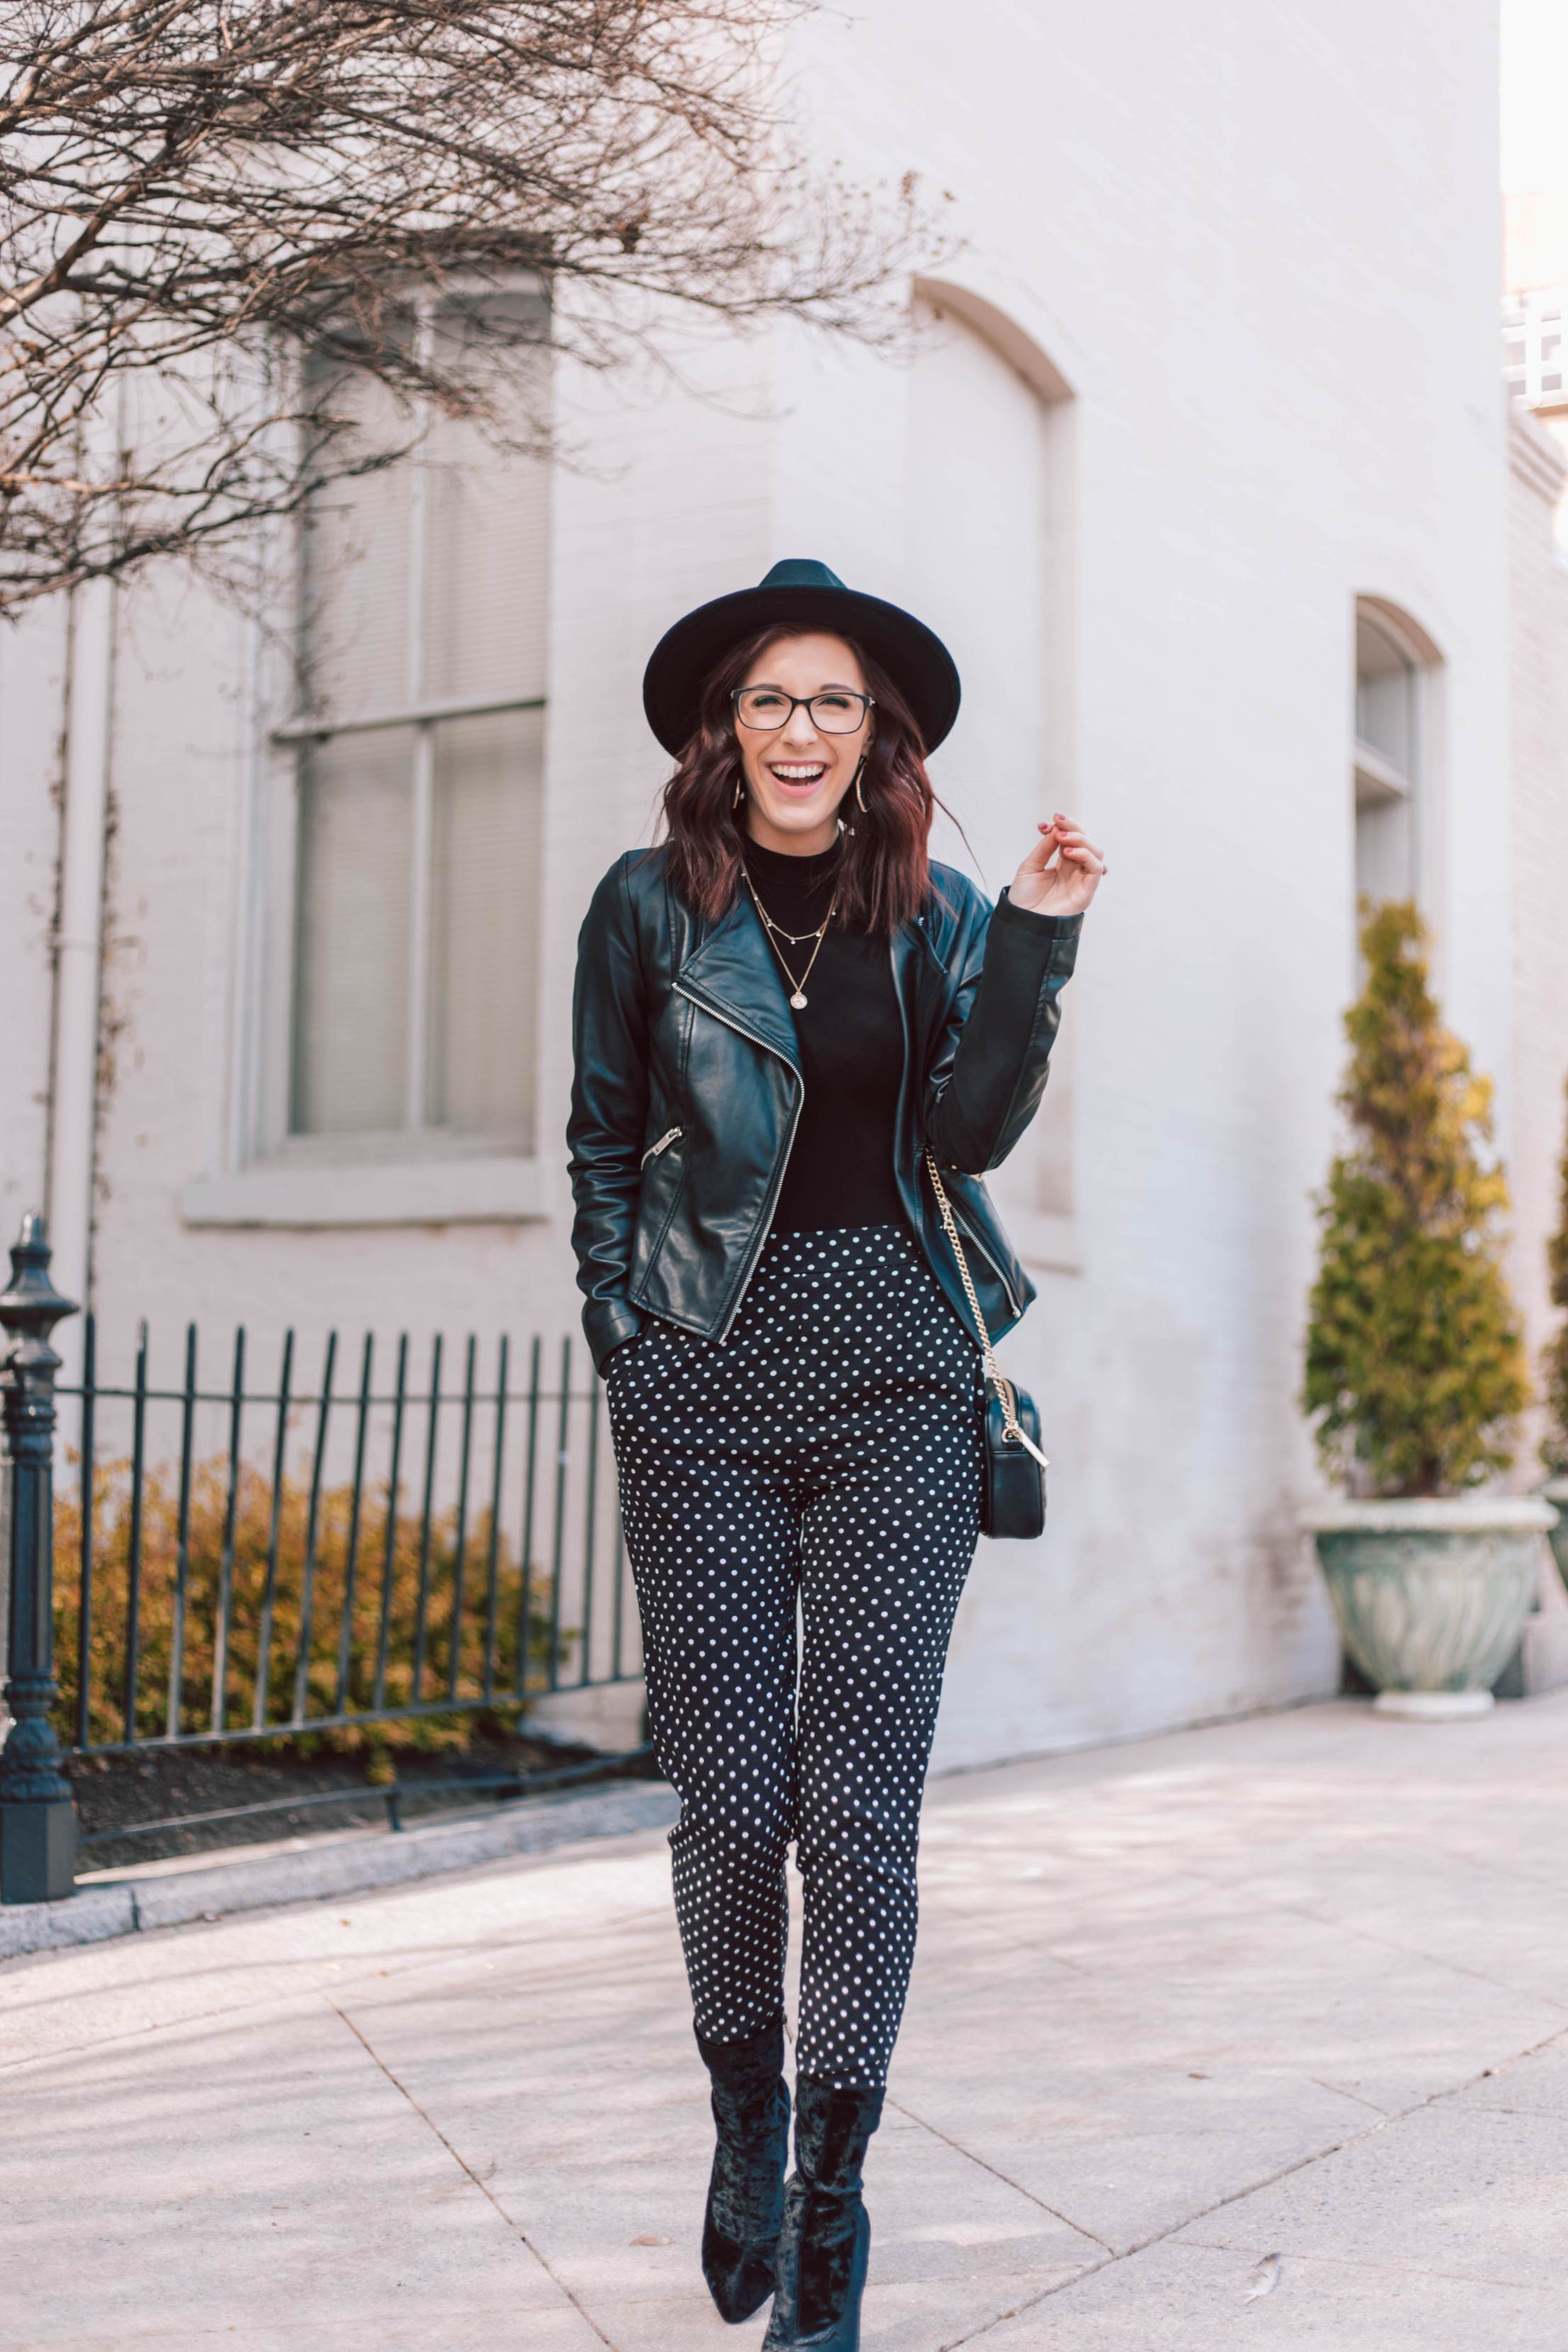 Making a Statement with Polka Dot Pants